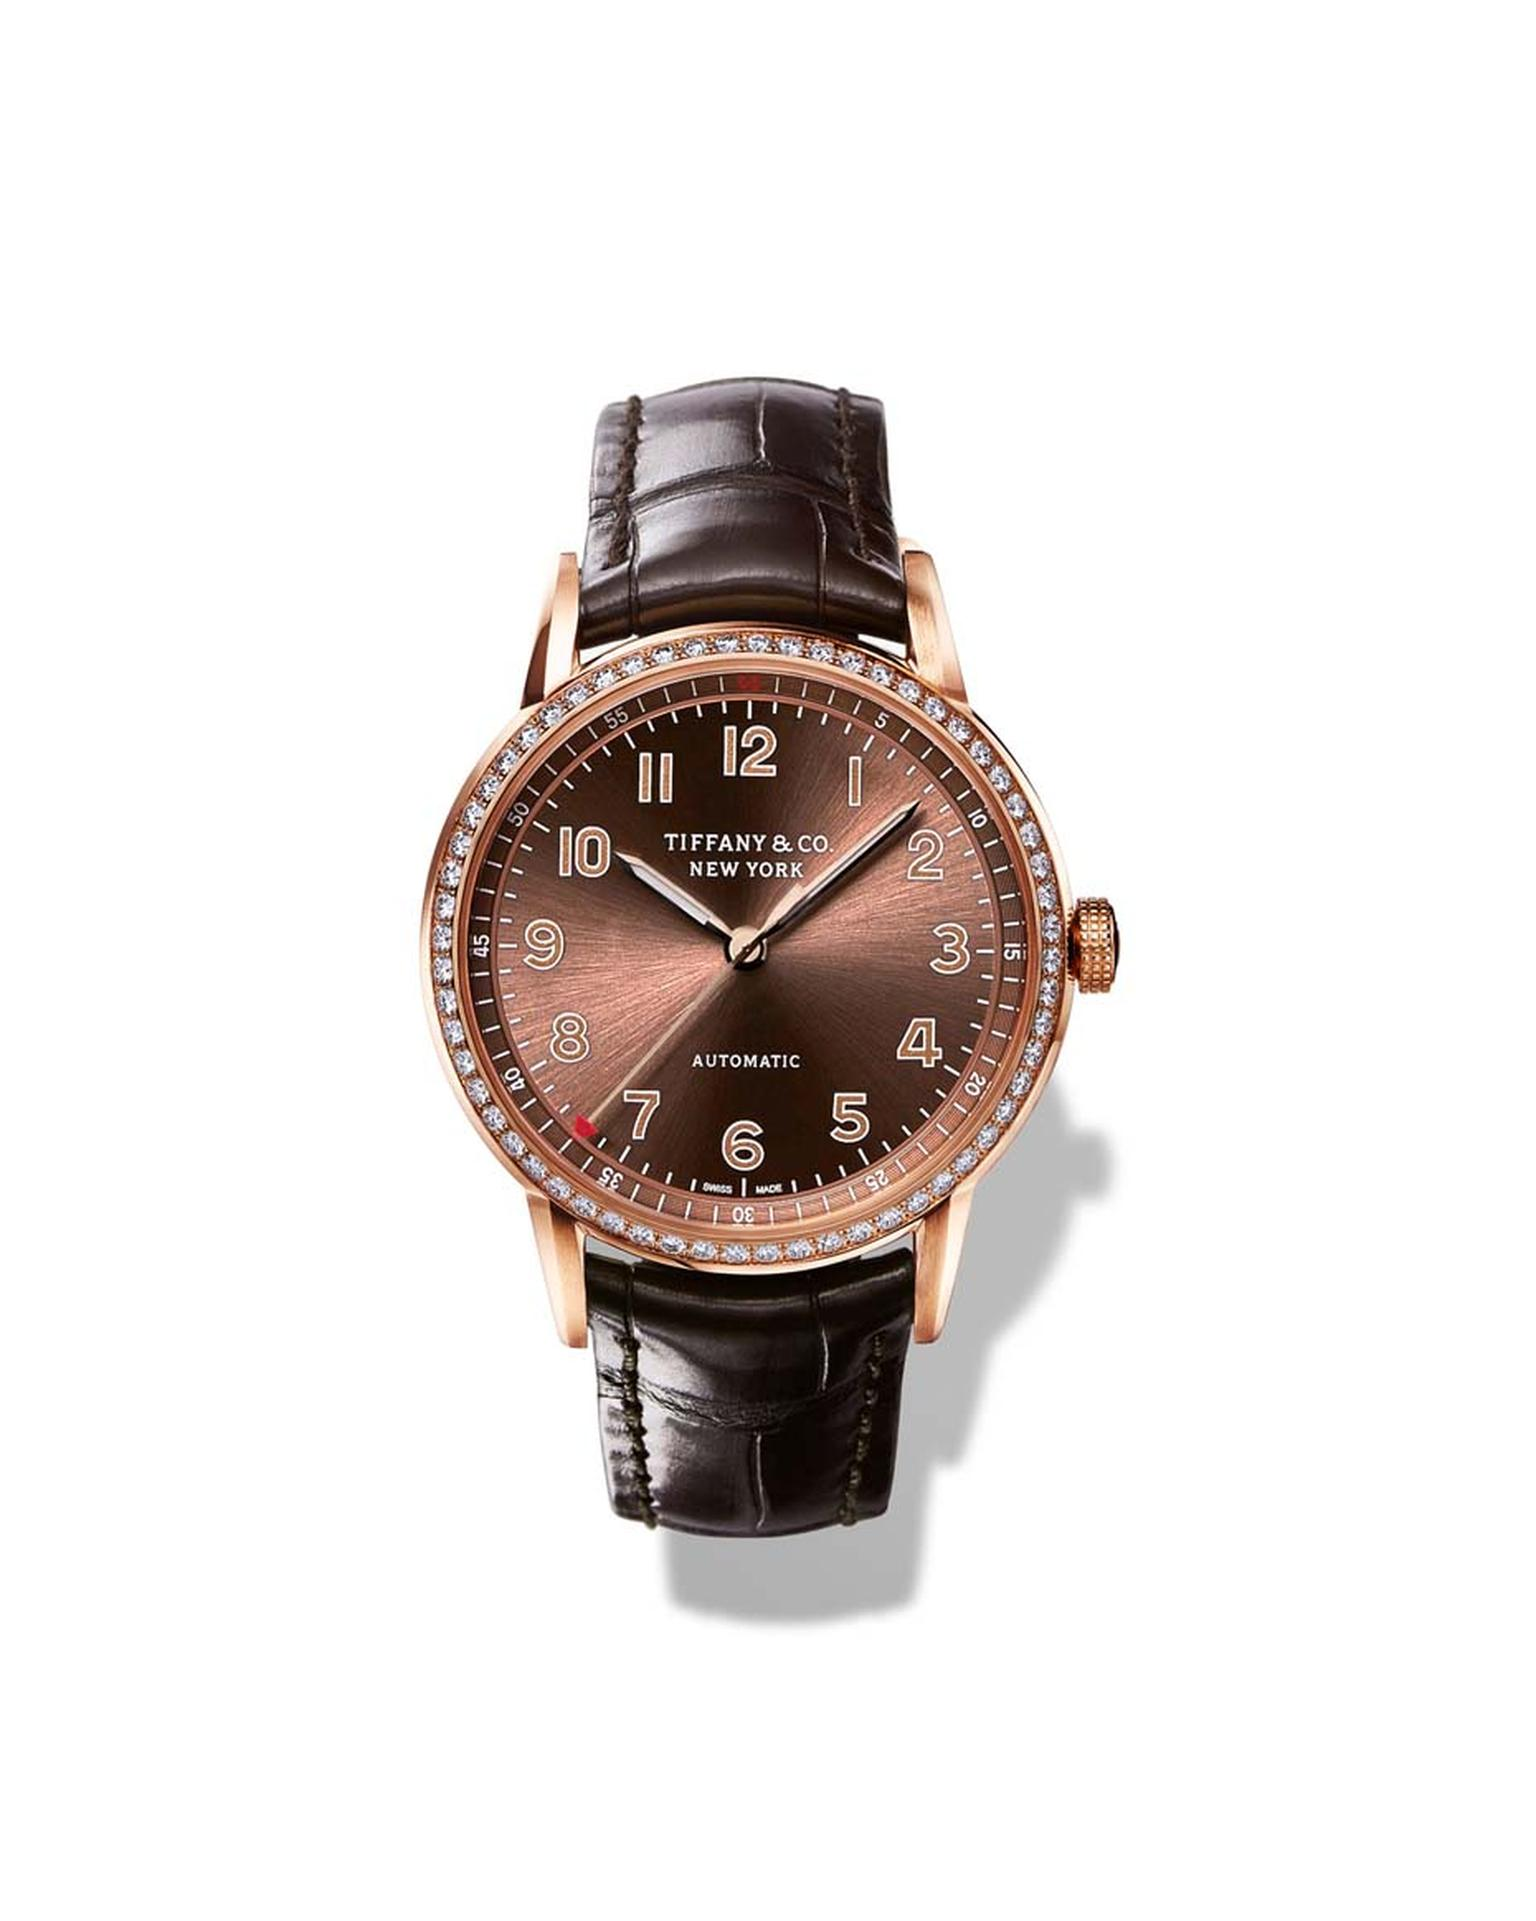 The new CT60 collection of Tiffany watches was inspired by a timepiece made for President Roosevelt in 1945. Pictured is the 34mm CT60 3-Hand ladies' watch in rose gold, with a brown sunray dial and round-cut brilliant diamonds on the bezel.